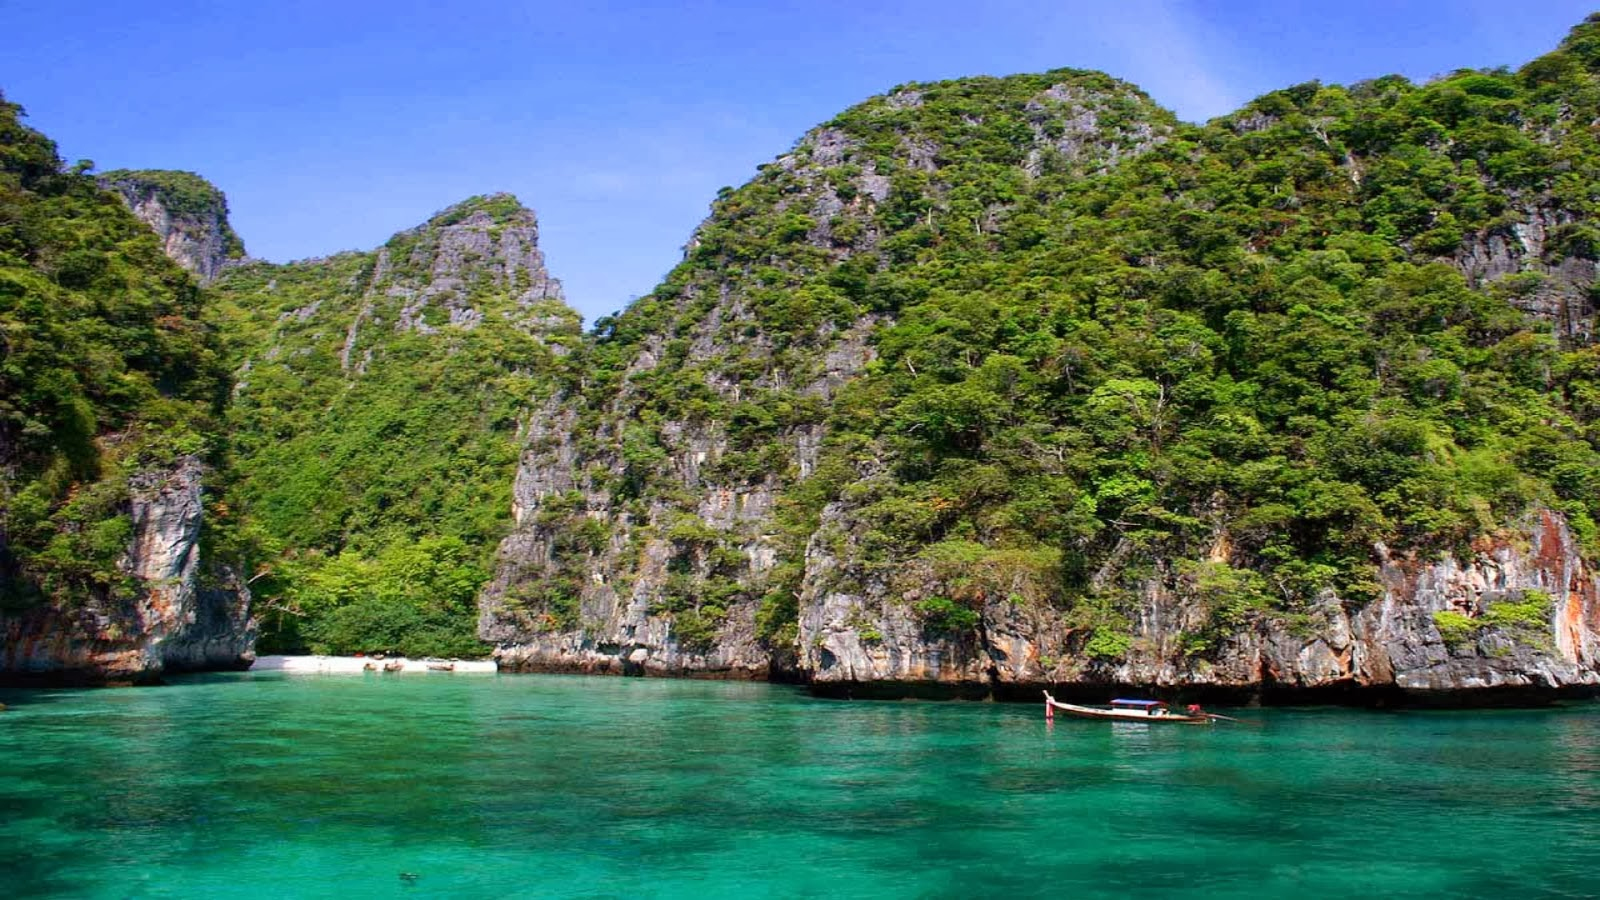 Hd Background Wallpaper 800x600: HD WALLPAPERS: Download Thailand Beach HD Wallpapers